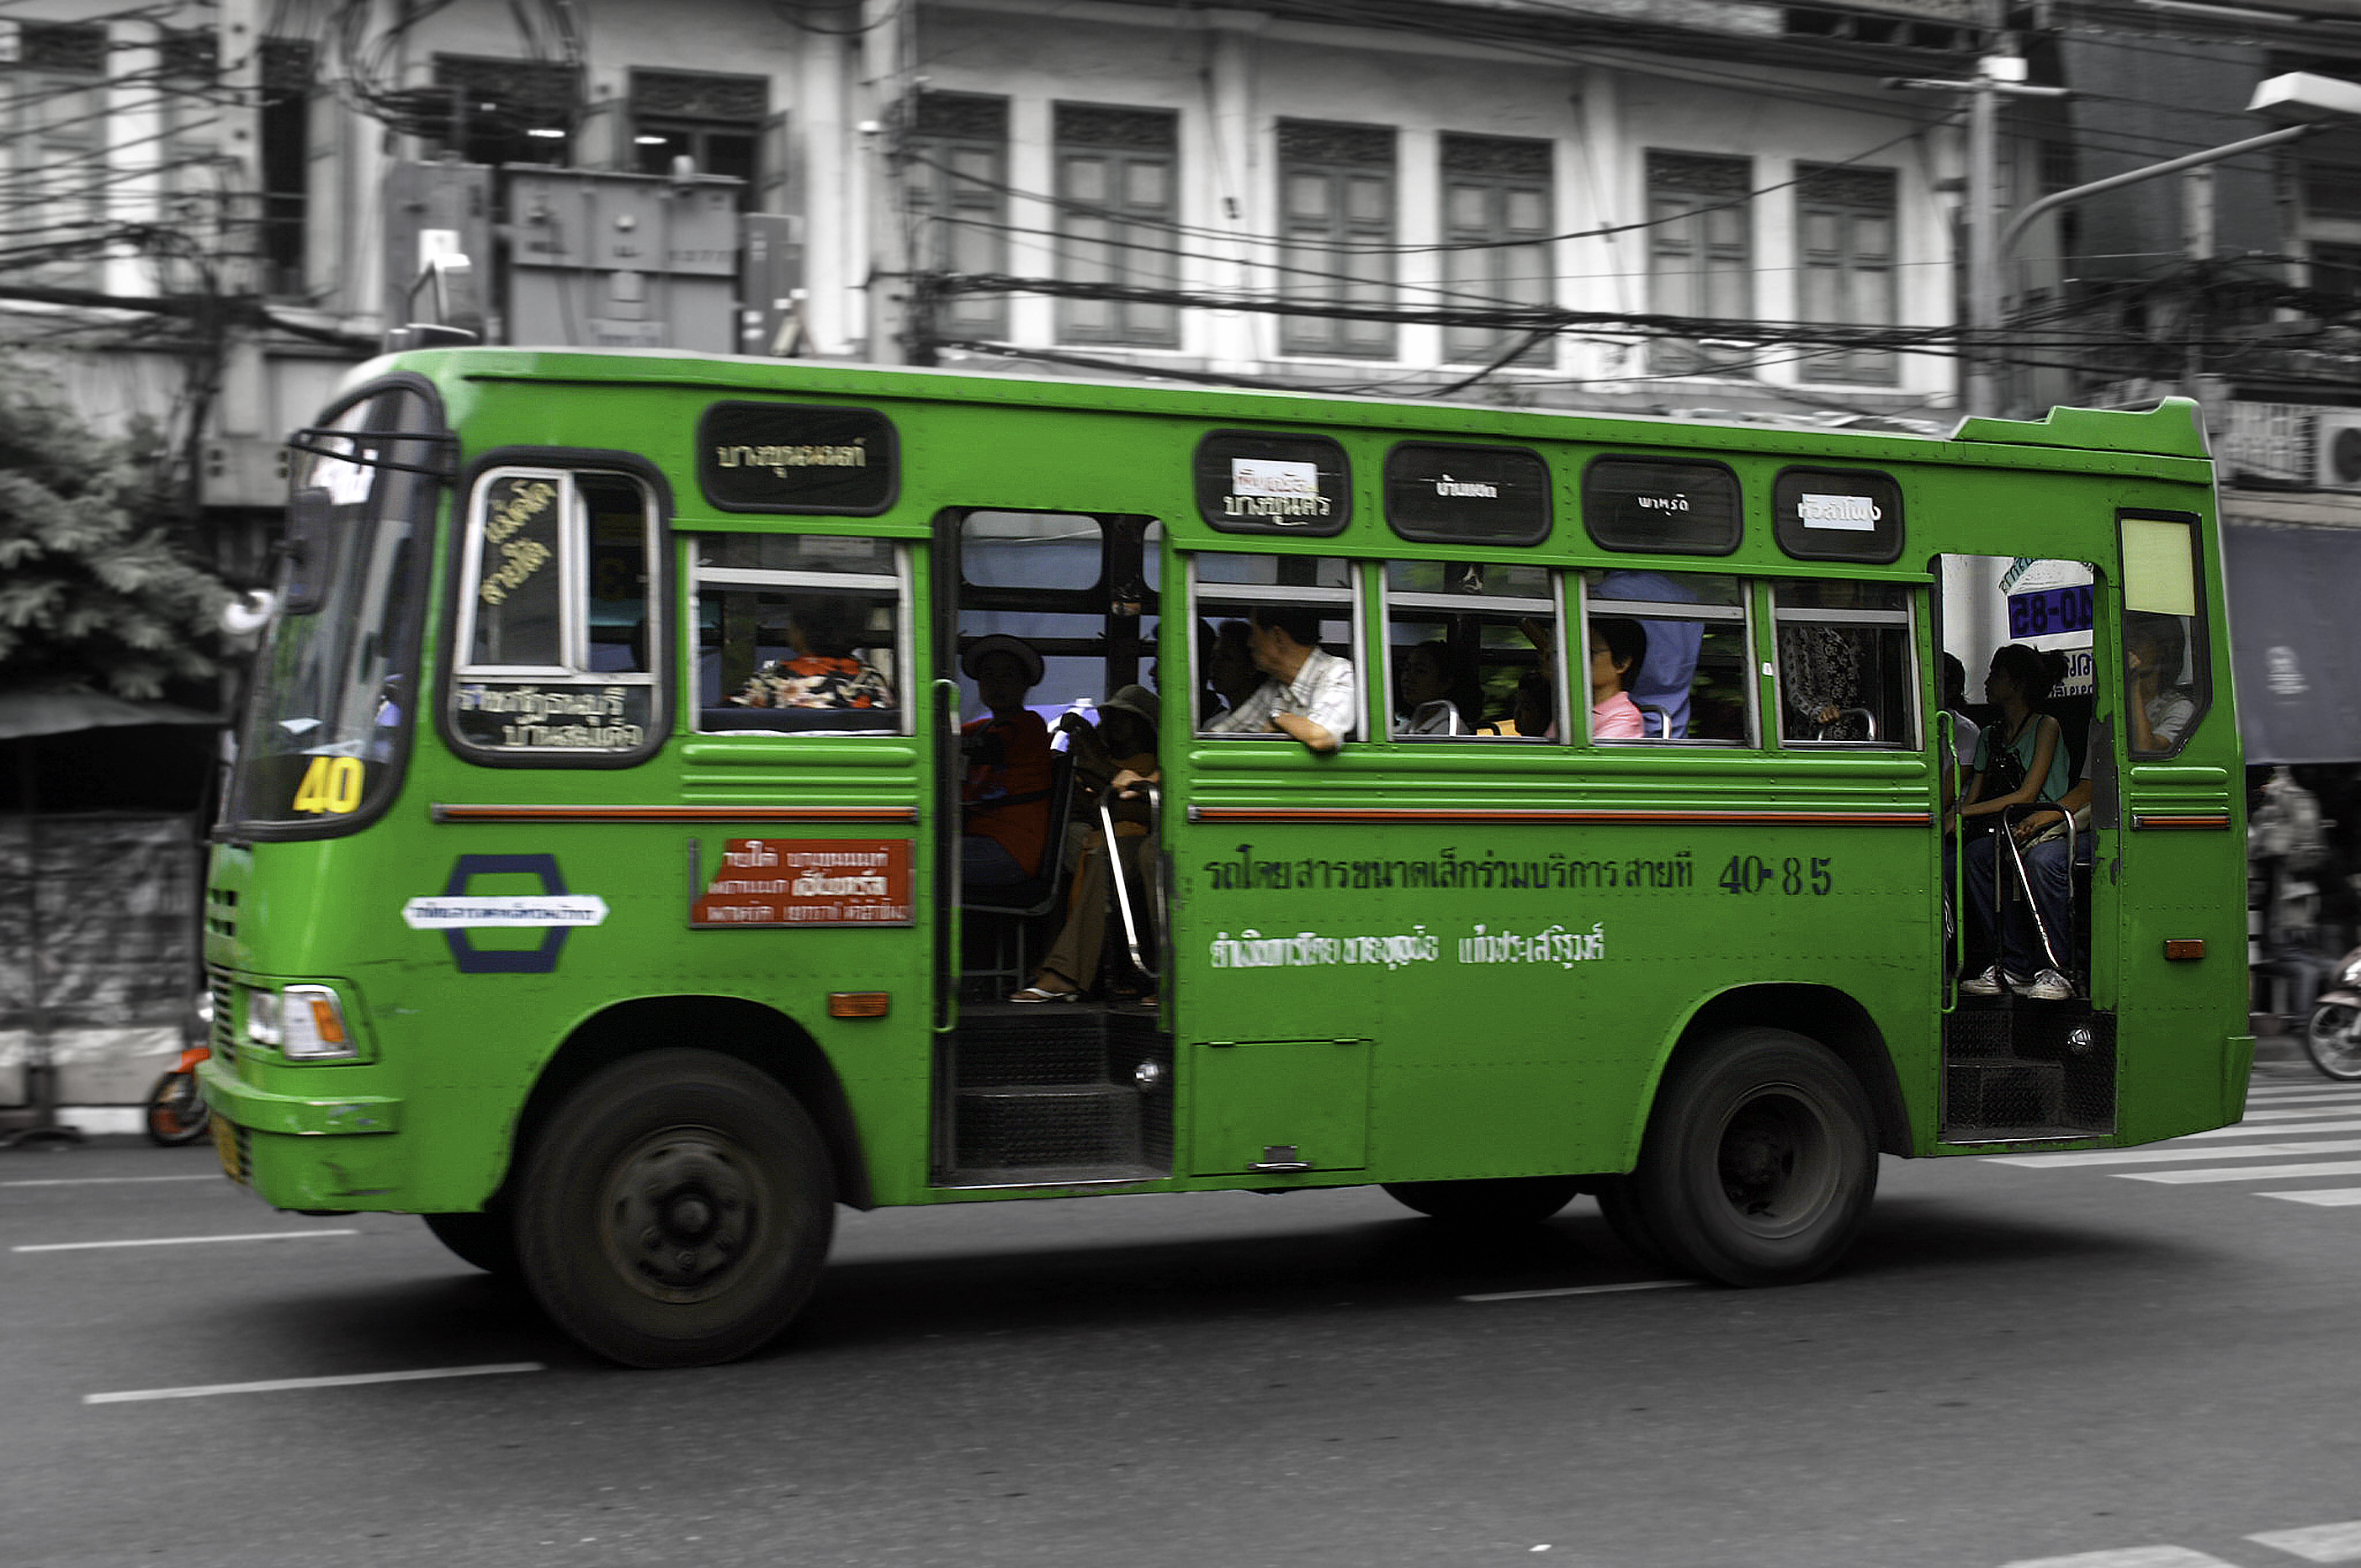 Transports In Bangkok By Photographer C U00e9cile Lopes